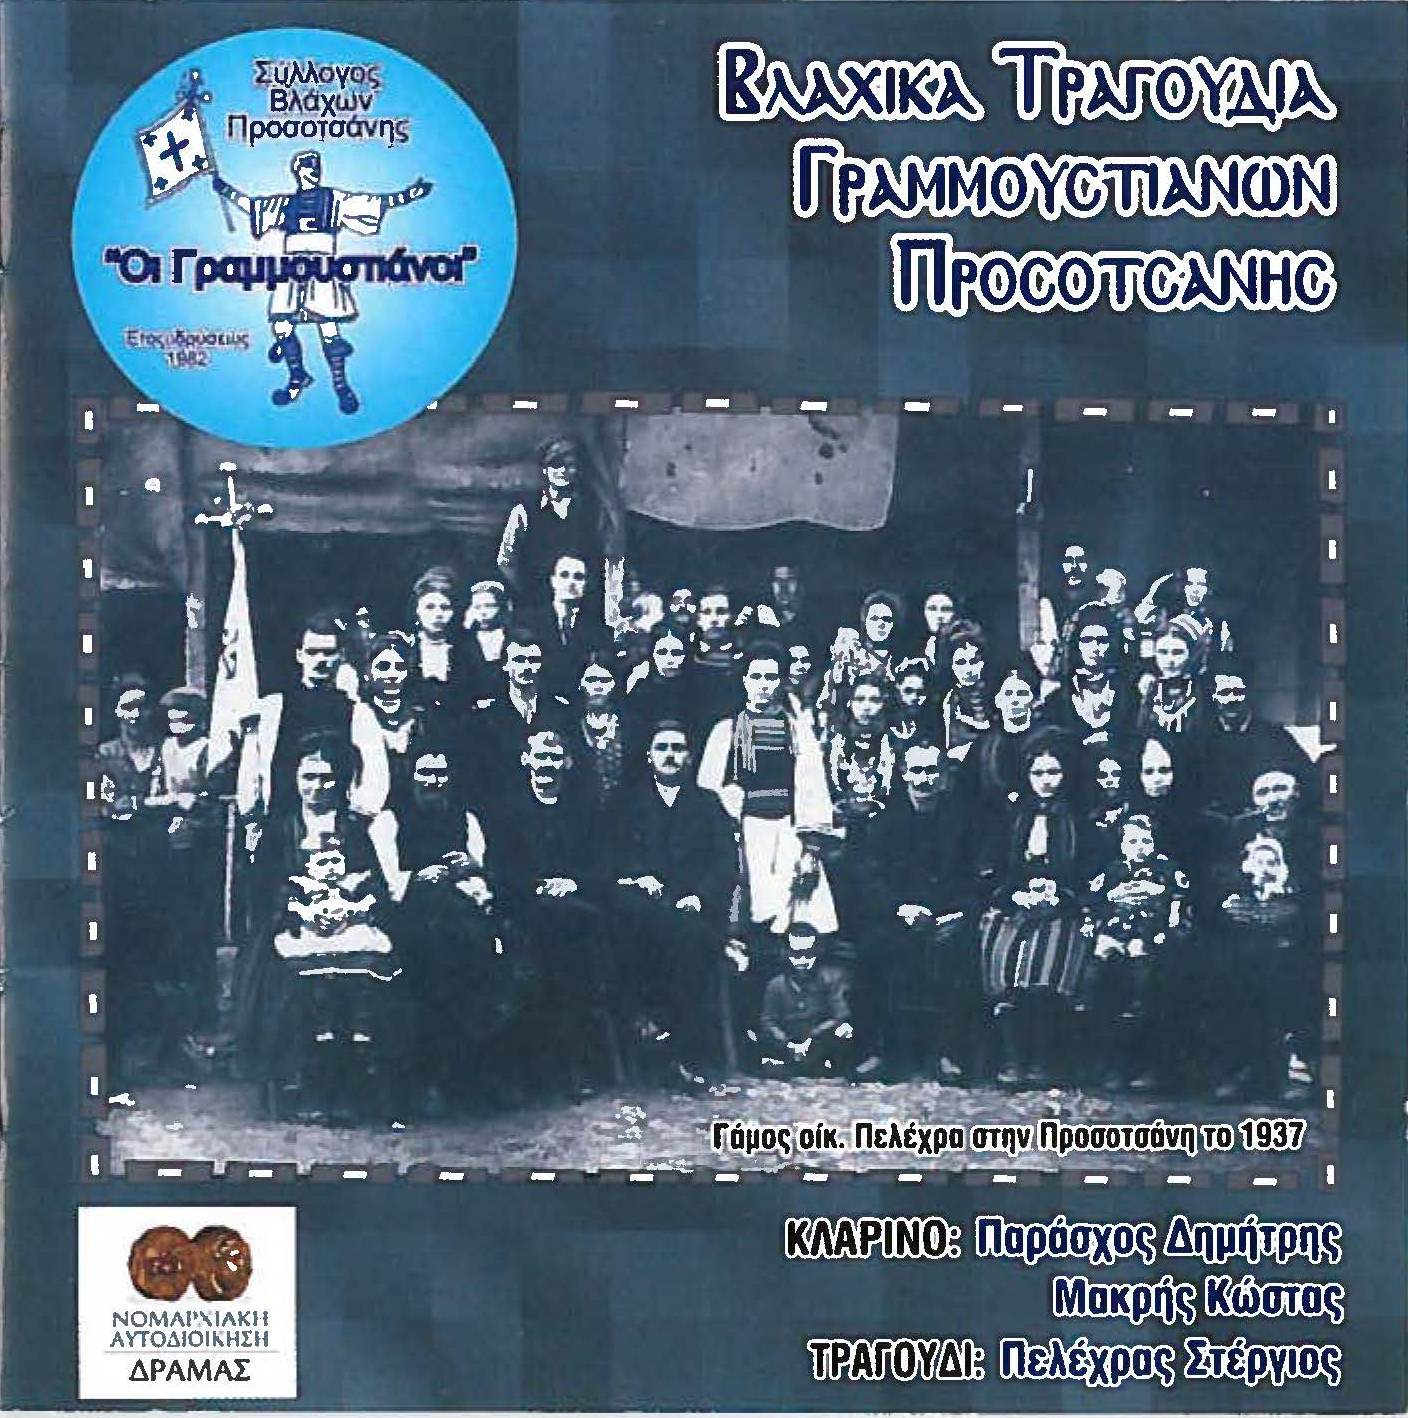 VLACH SONGS OF THE ASSOCIATION GRAMMOUSTIANI OF PROSOTSANI